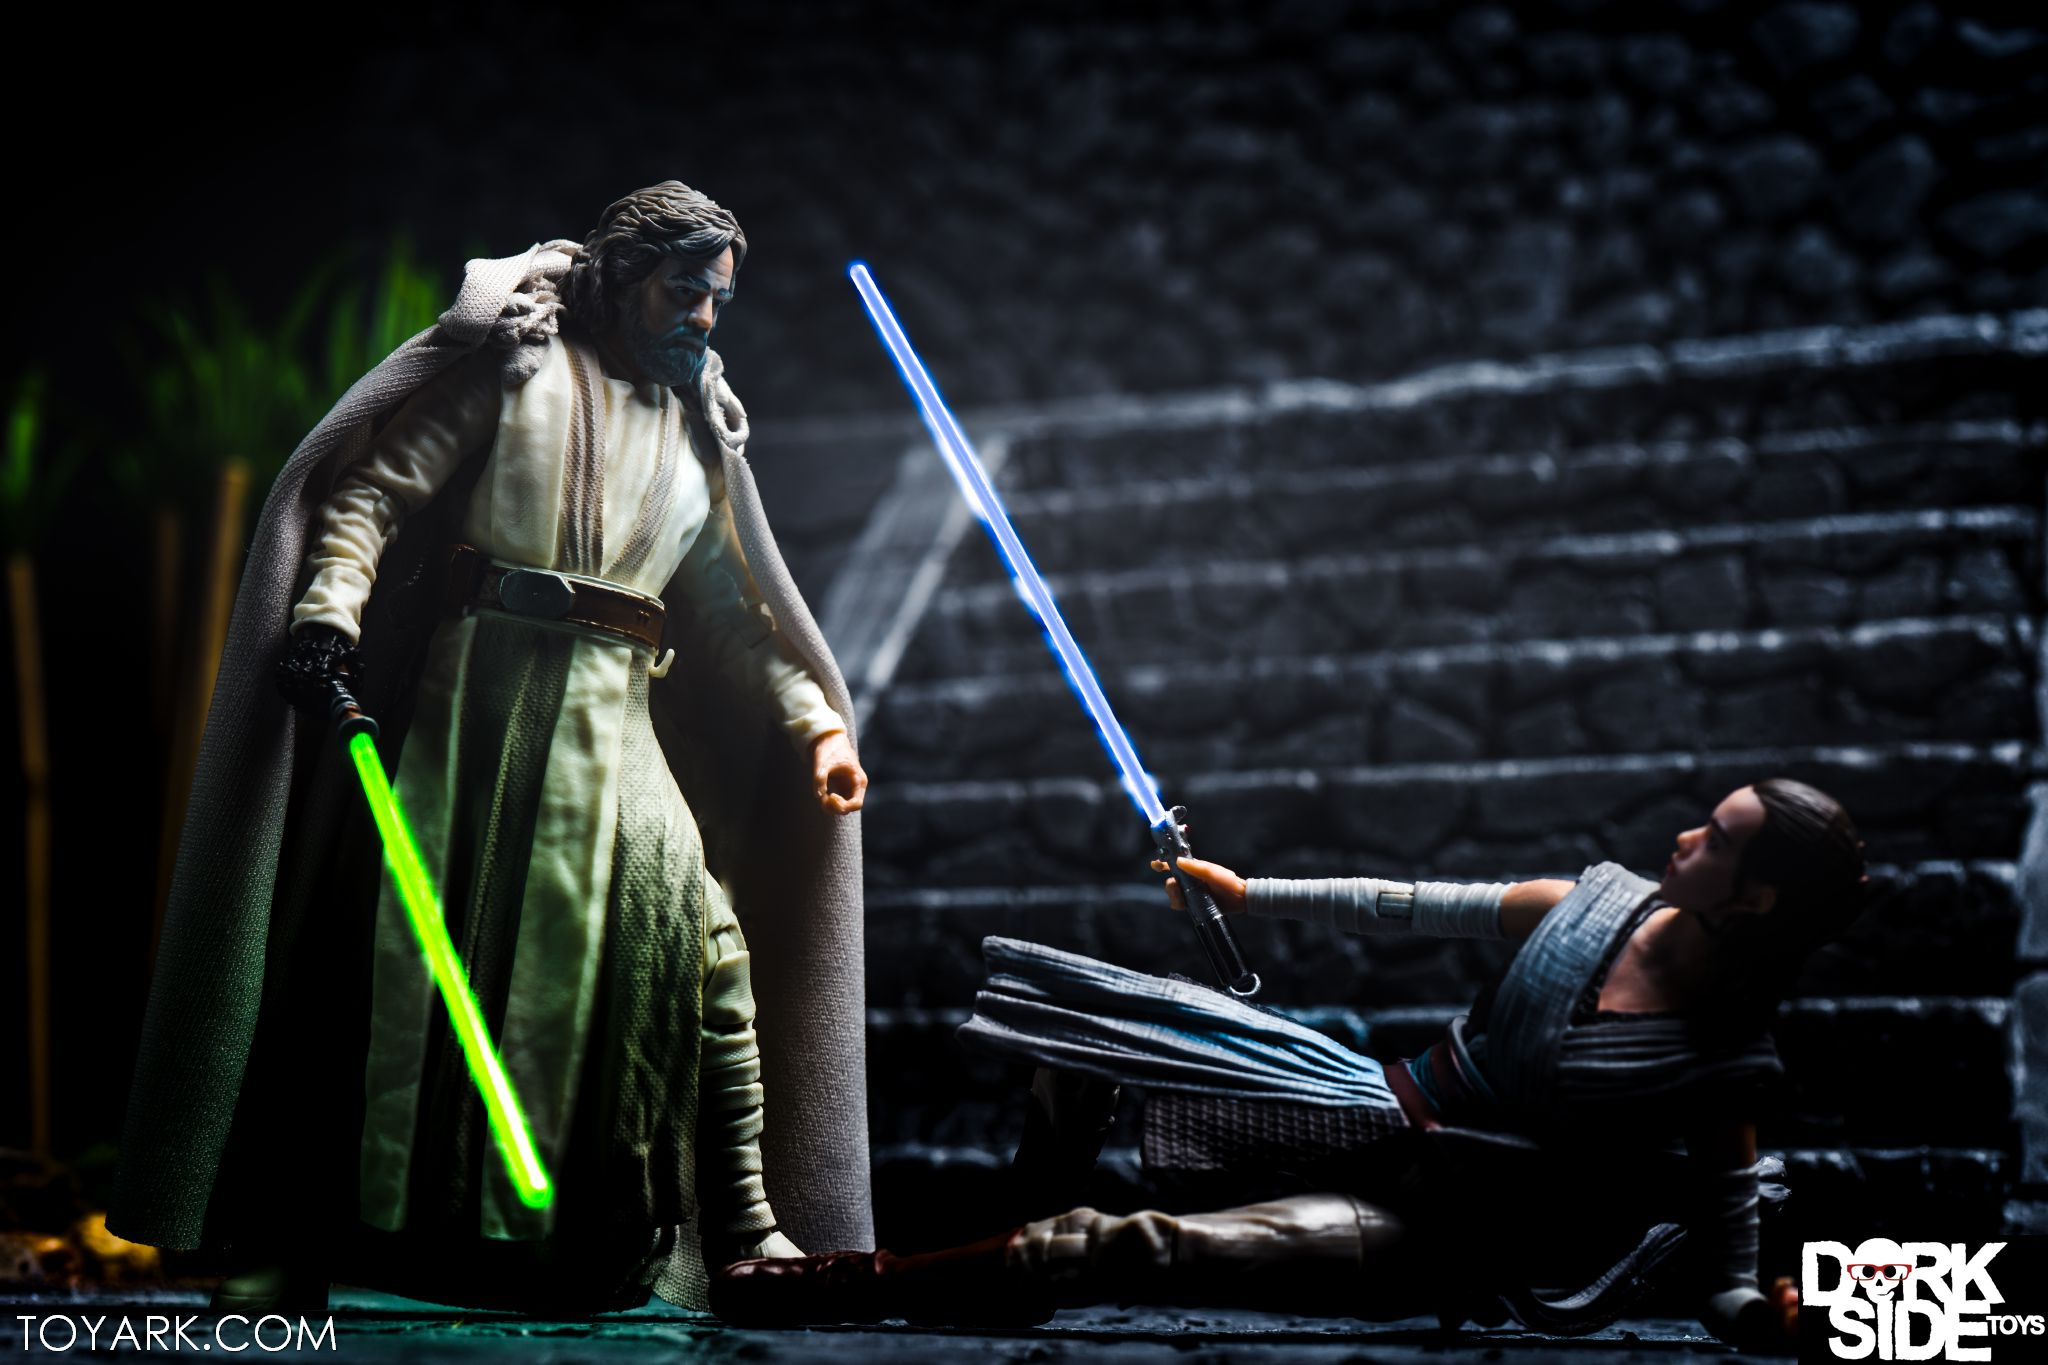 Kylo Ren - The Last Jedi Star Wars Black Series Photo ... - photo#35